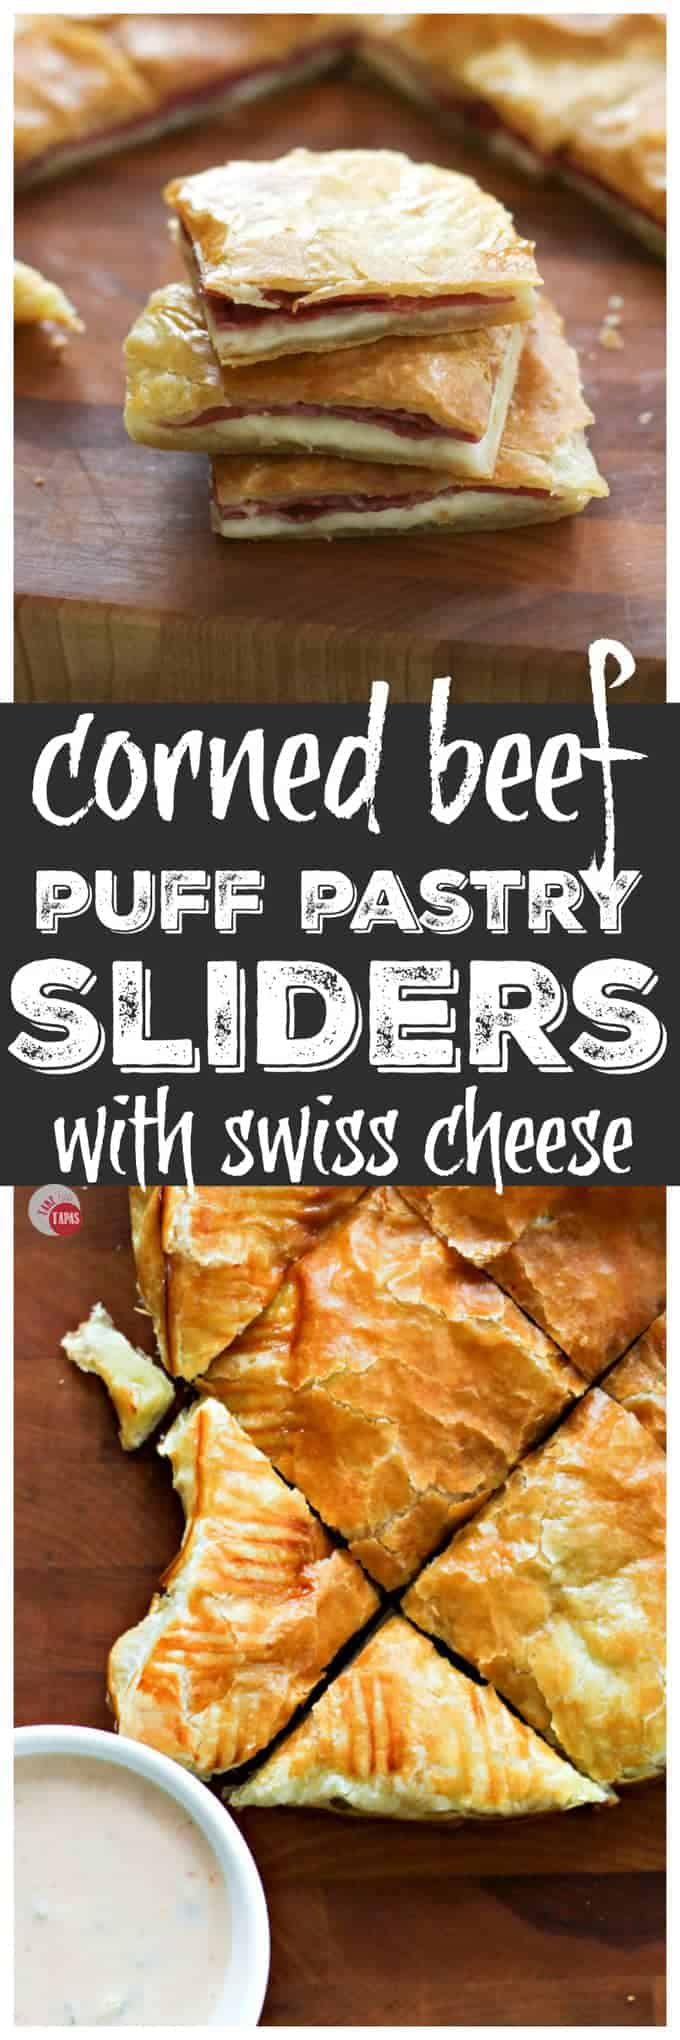 Corned Beef Swiss Cheese Puff Pastry Sliders | Take Two Tapas | #CornedBeef #PuffPastry #Sliders #StPatricksDay